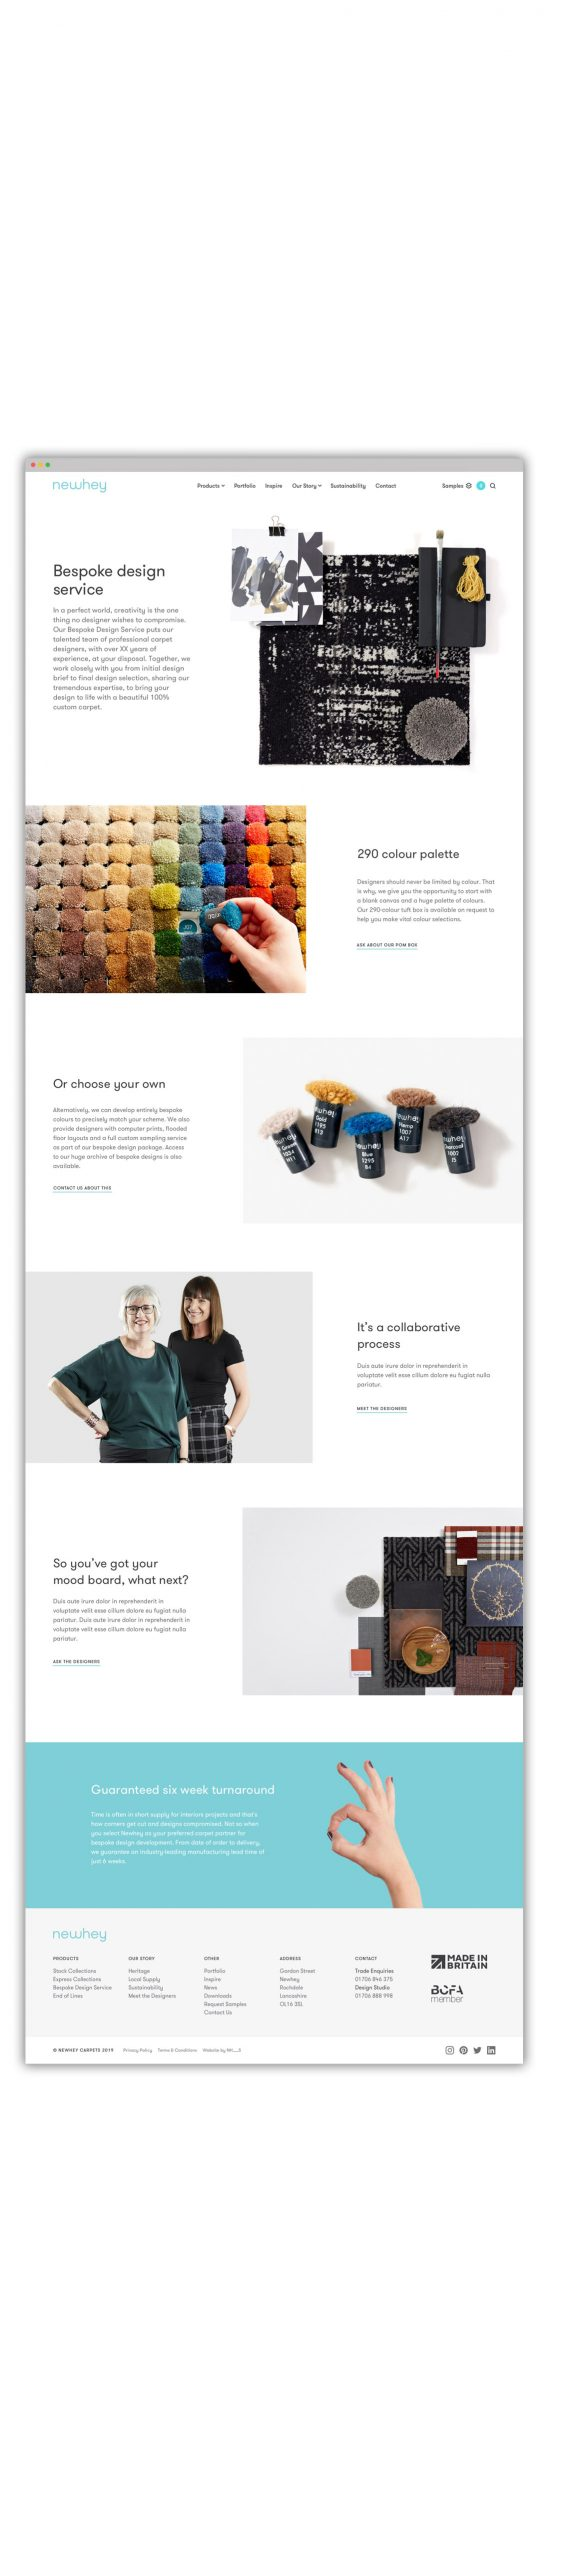 newhey-web-pages_2